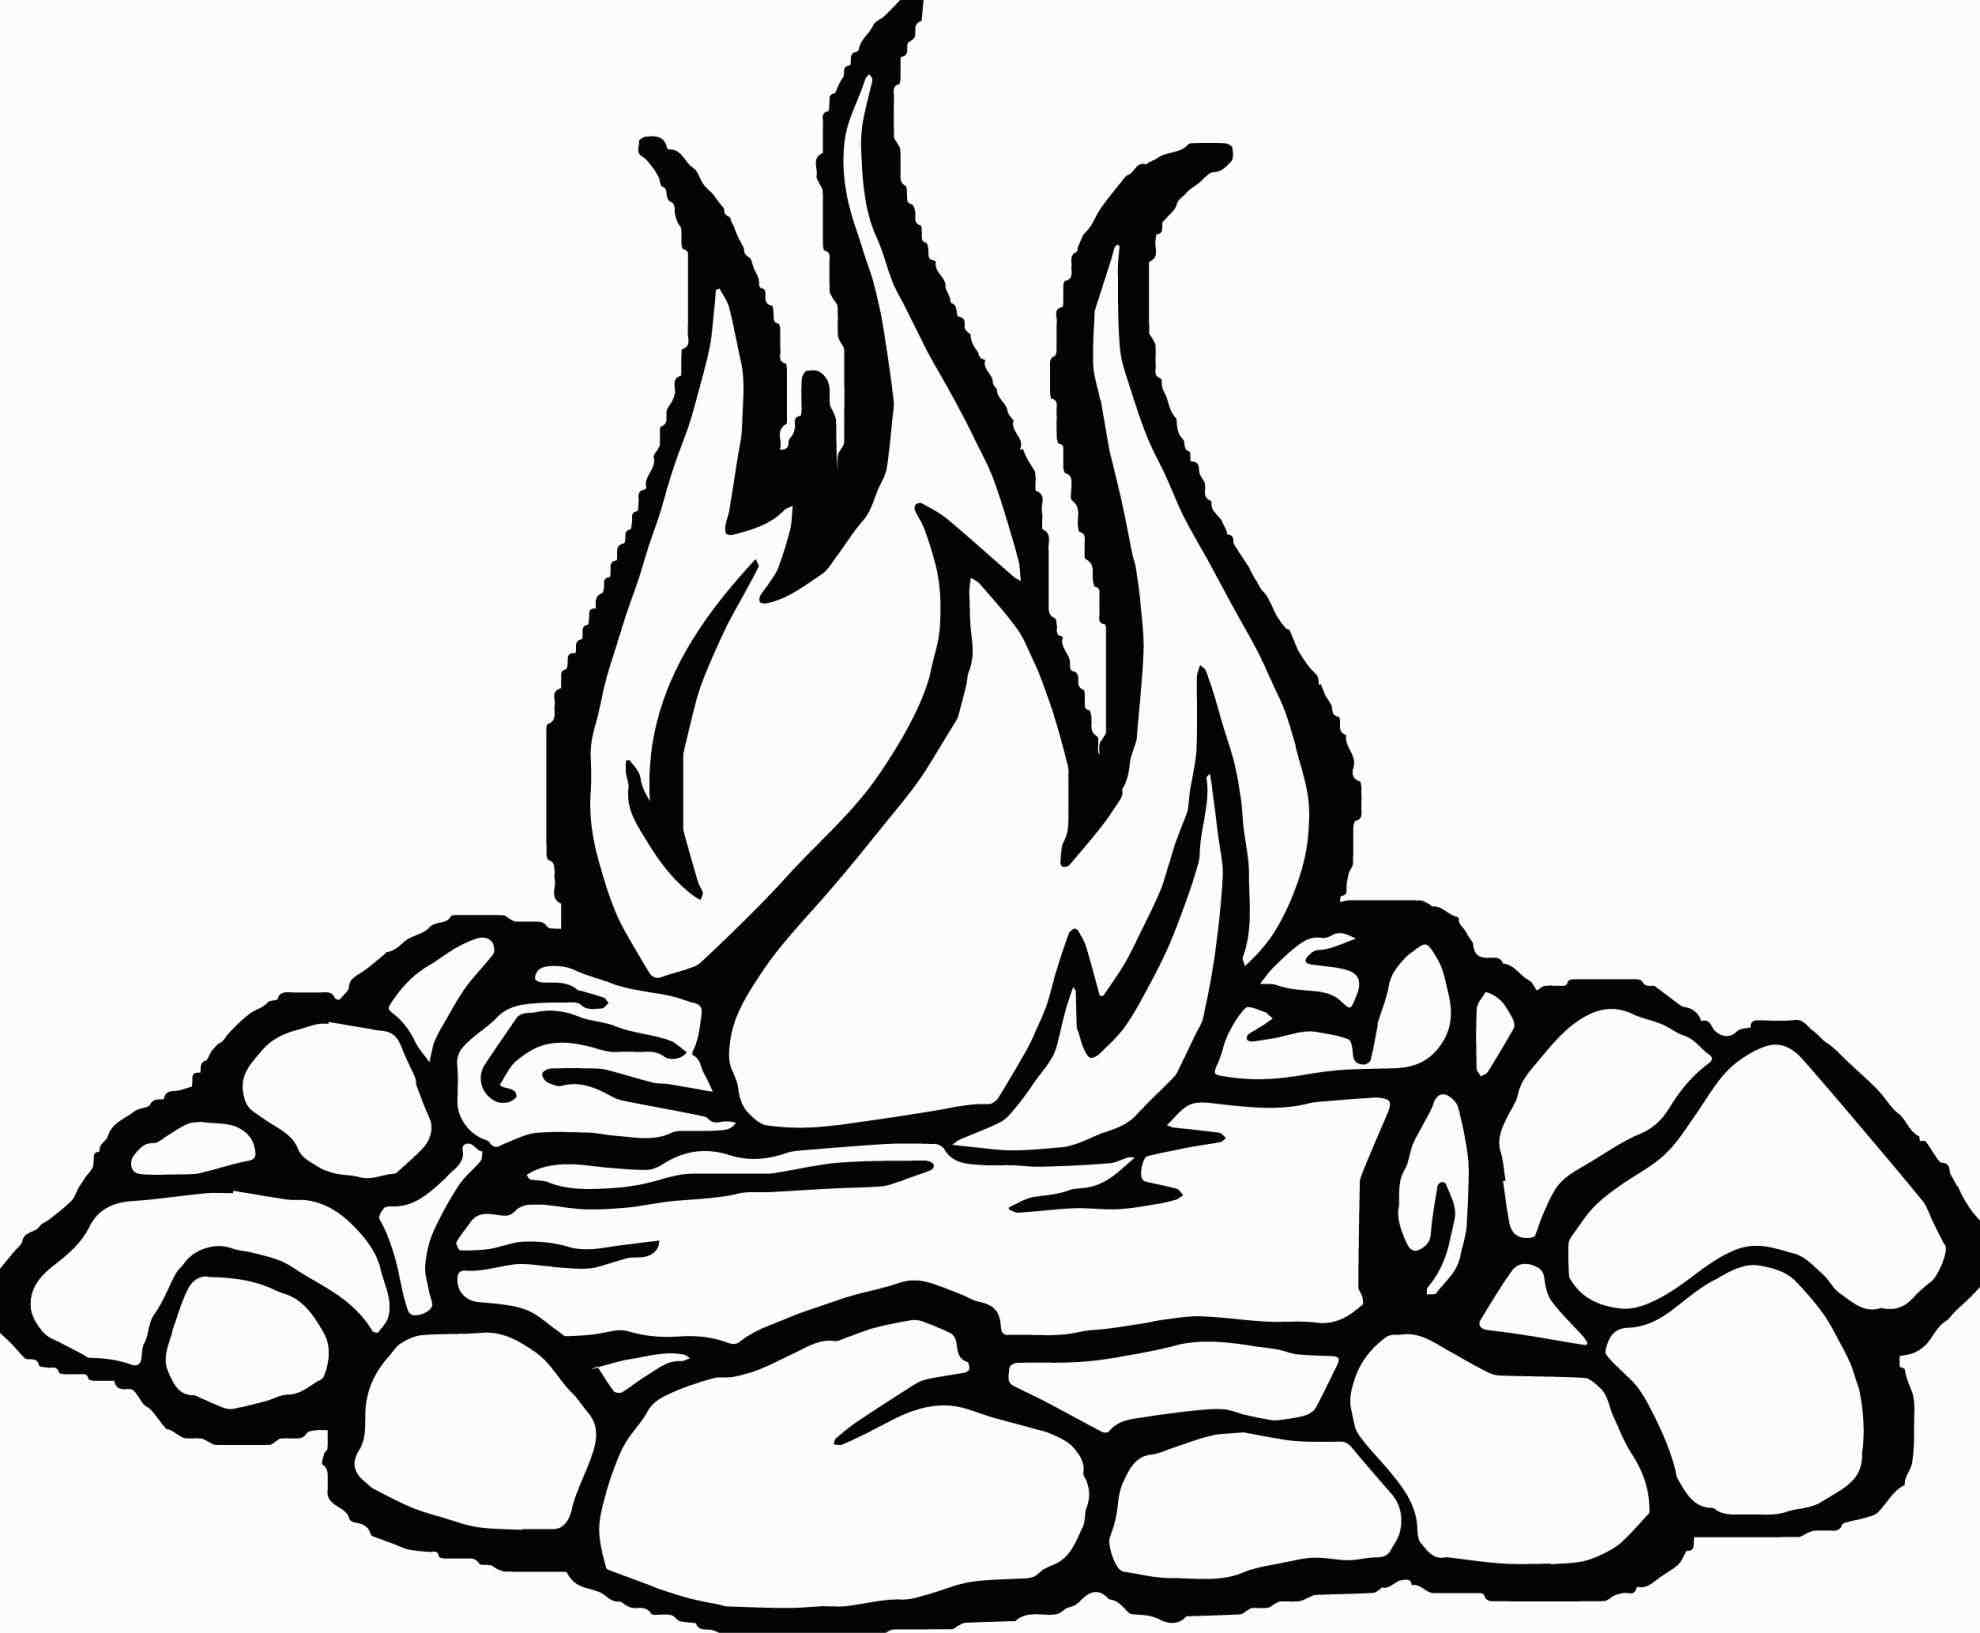 fire flames coloring pages | Fire Flames Drawing at GetDrawings.com | Free for personal ...